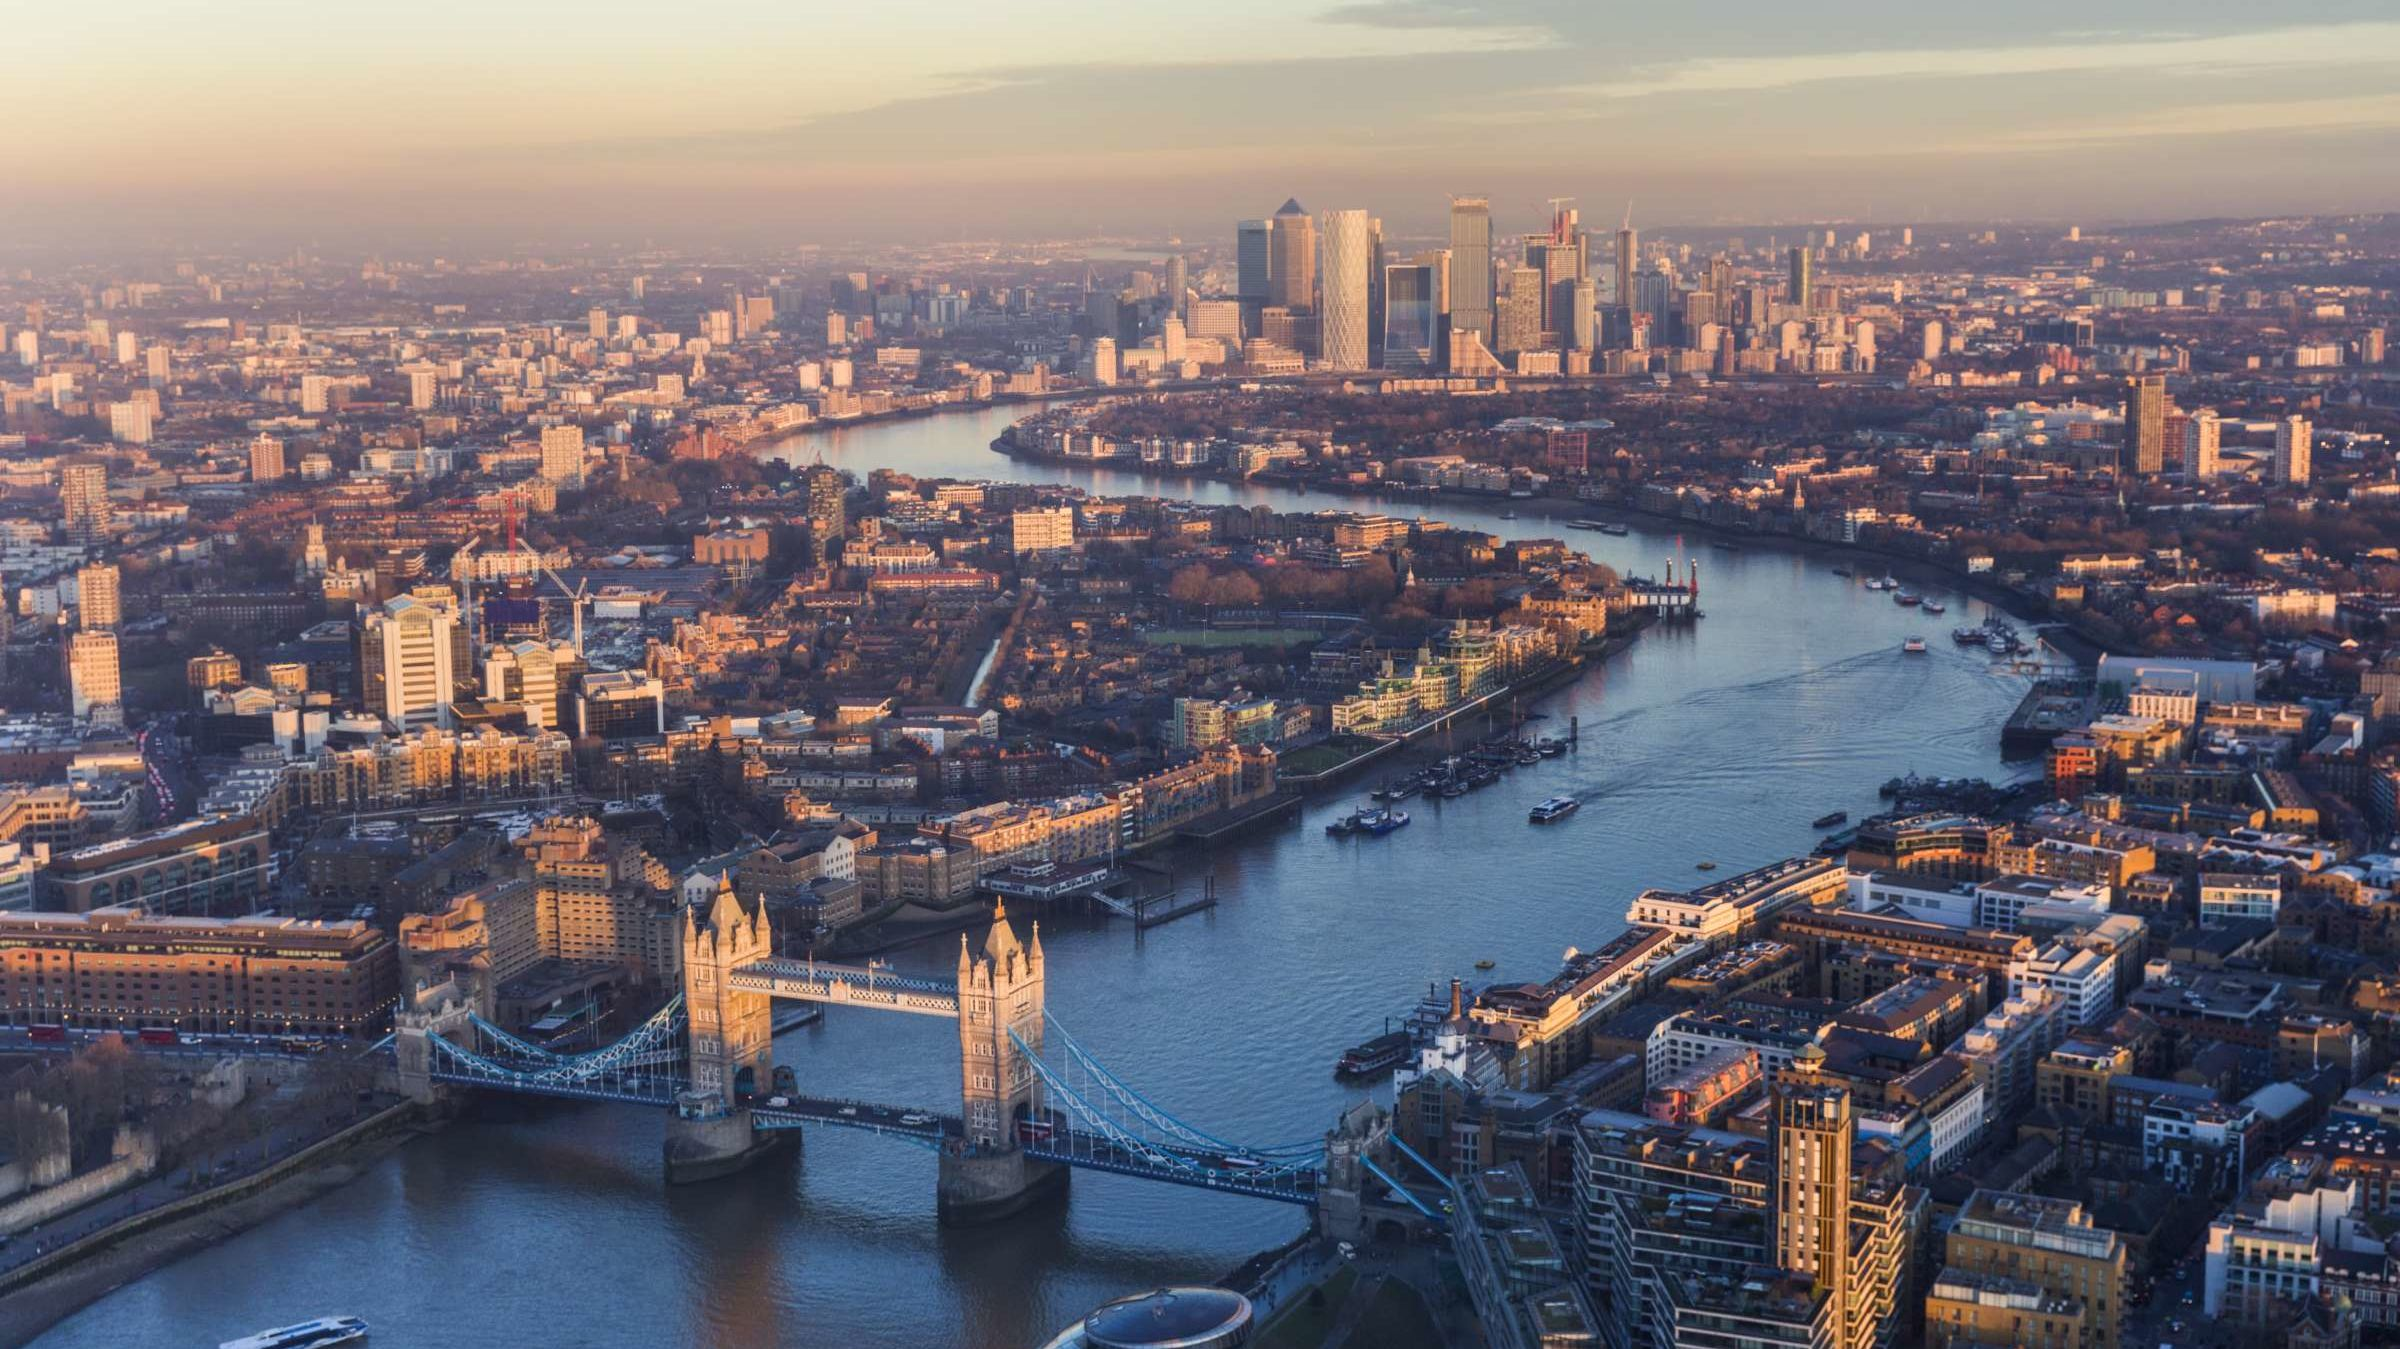 11 Facts About the River Thames